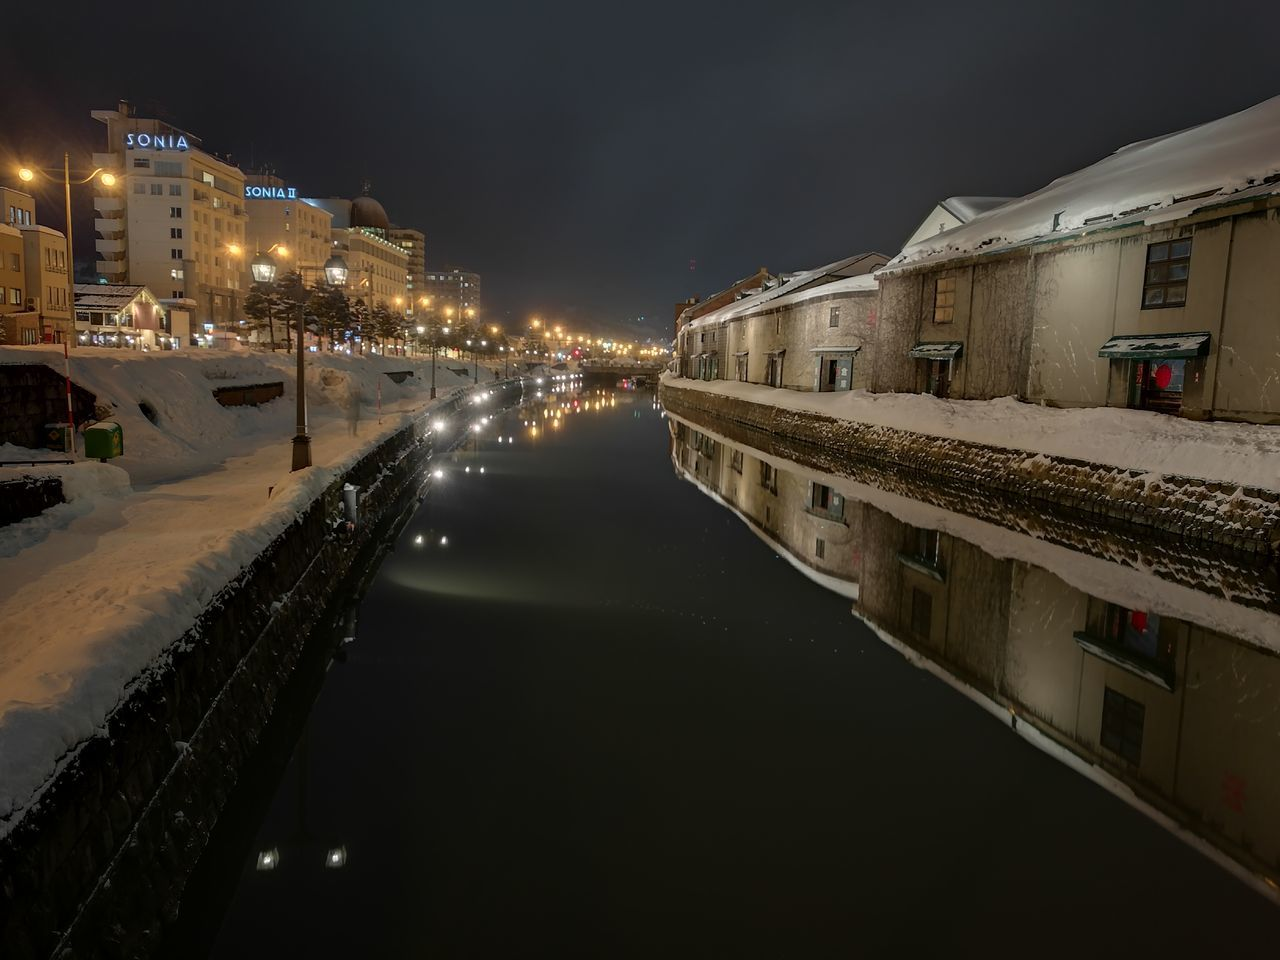 architecture, building exterior, built structure, night, illuminated, residential building, transportation, sky, house, outdoors, no people, water, winter, city, cold temperature, nature, nautical vessel